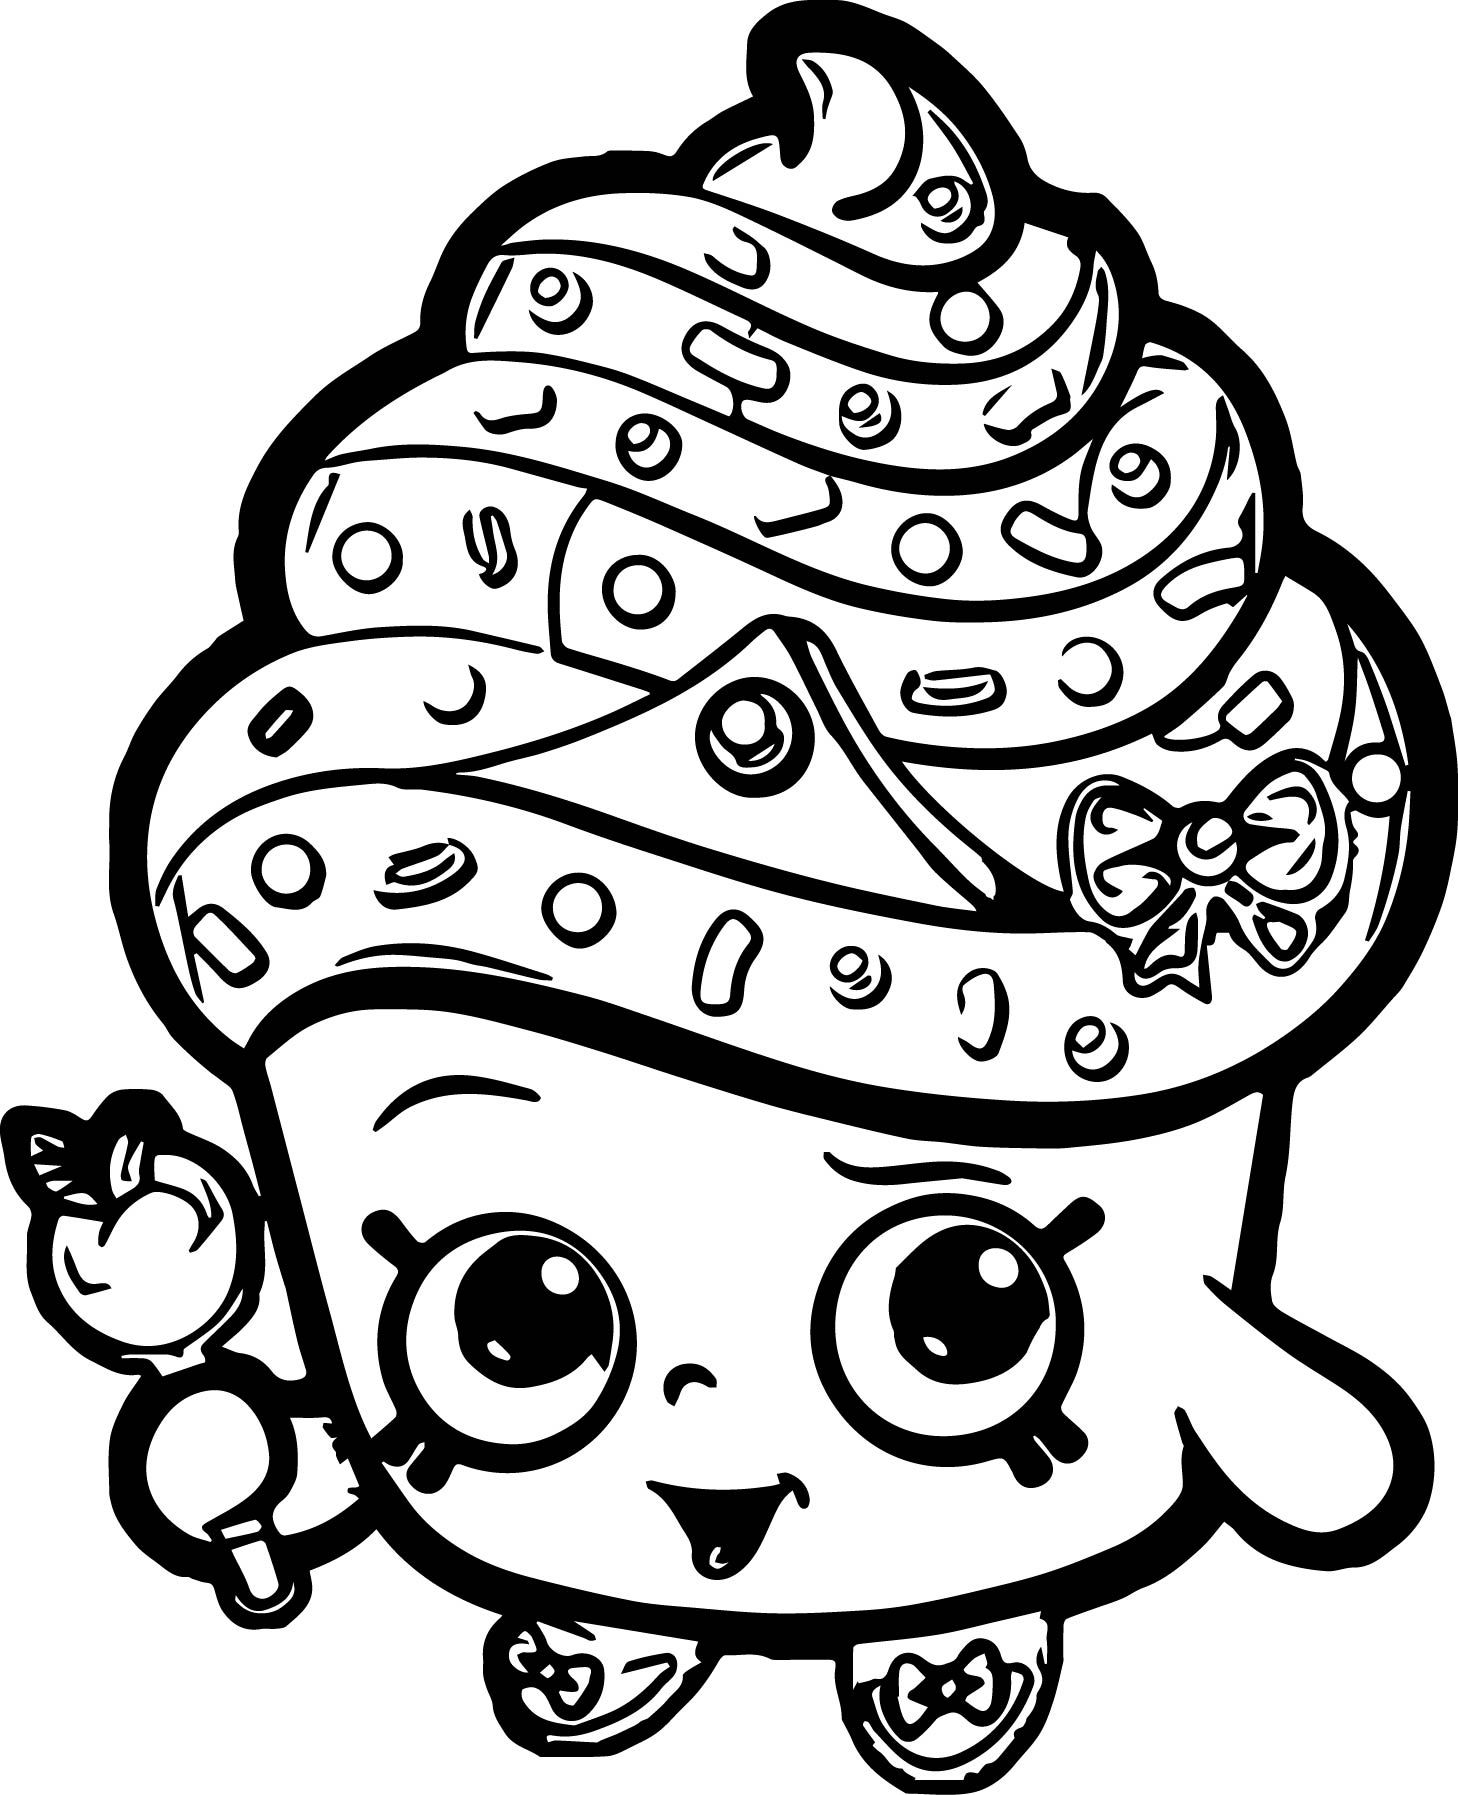 shopkins coloring pages cupcake queen - Cupcakes Coloring Pages